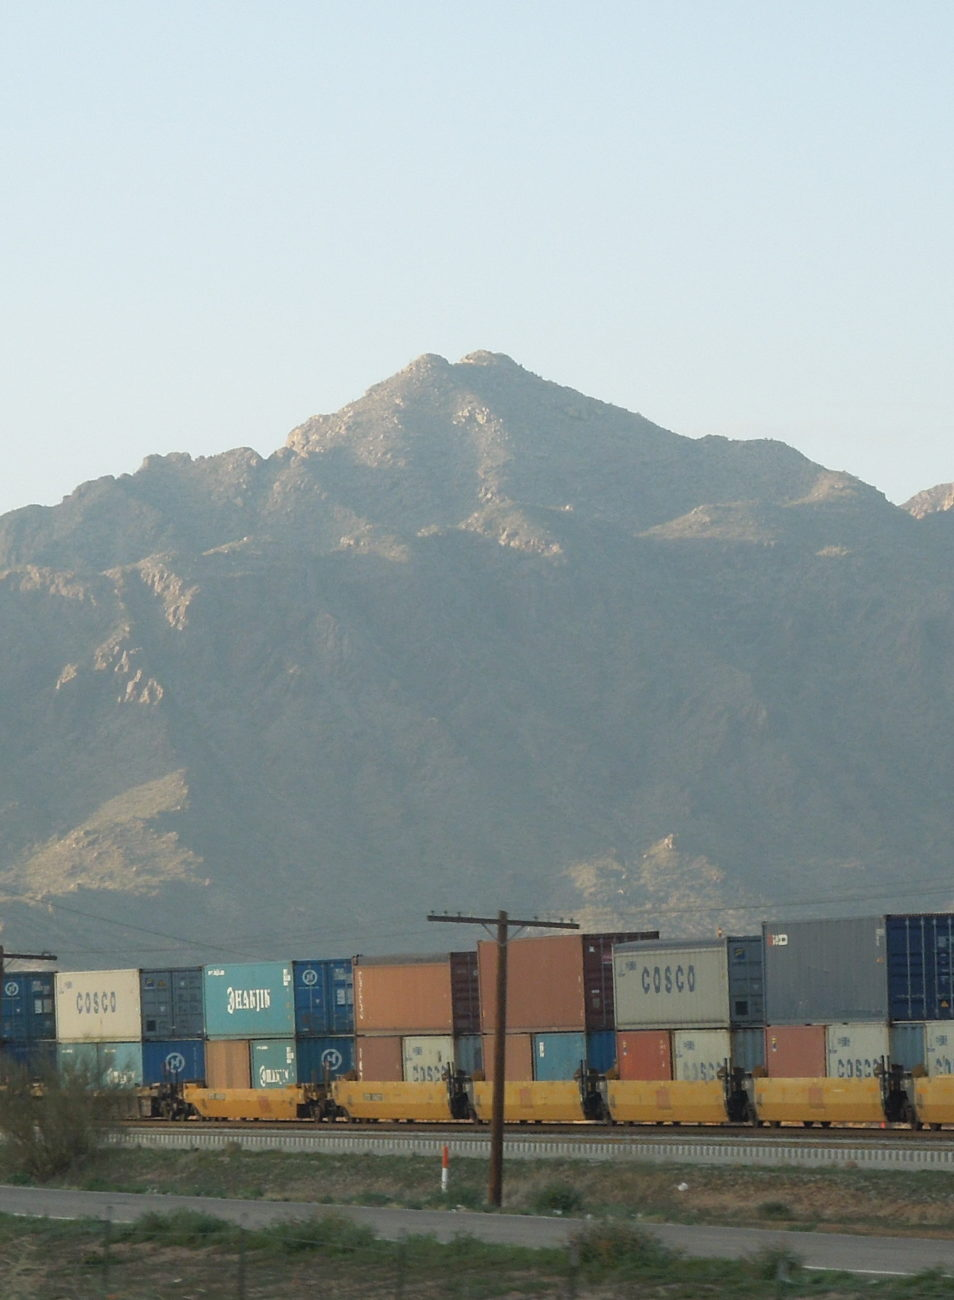 cropped-Freight_train_in_Tucson_Arizona_2-e1454808378305.jpg